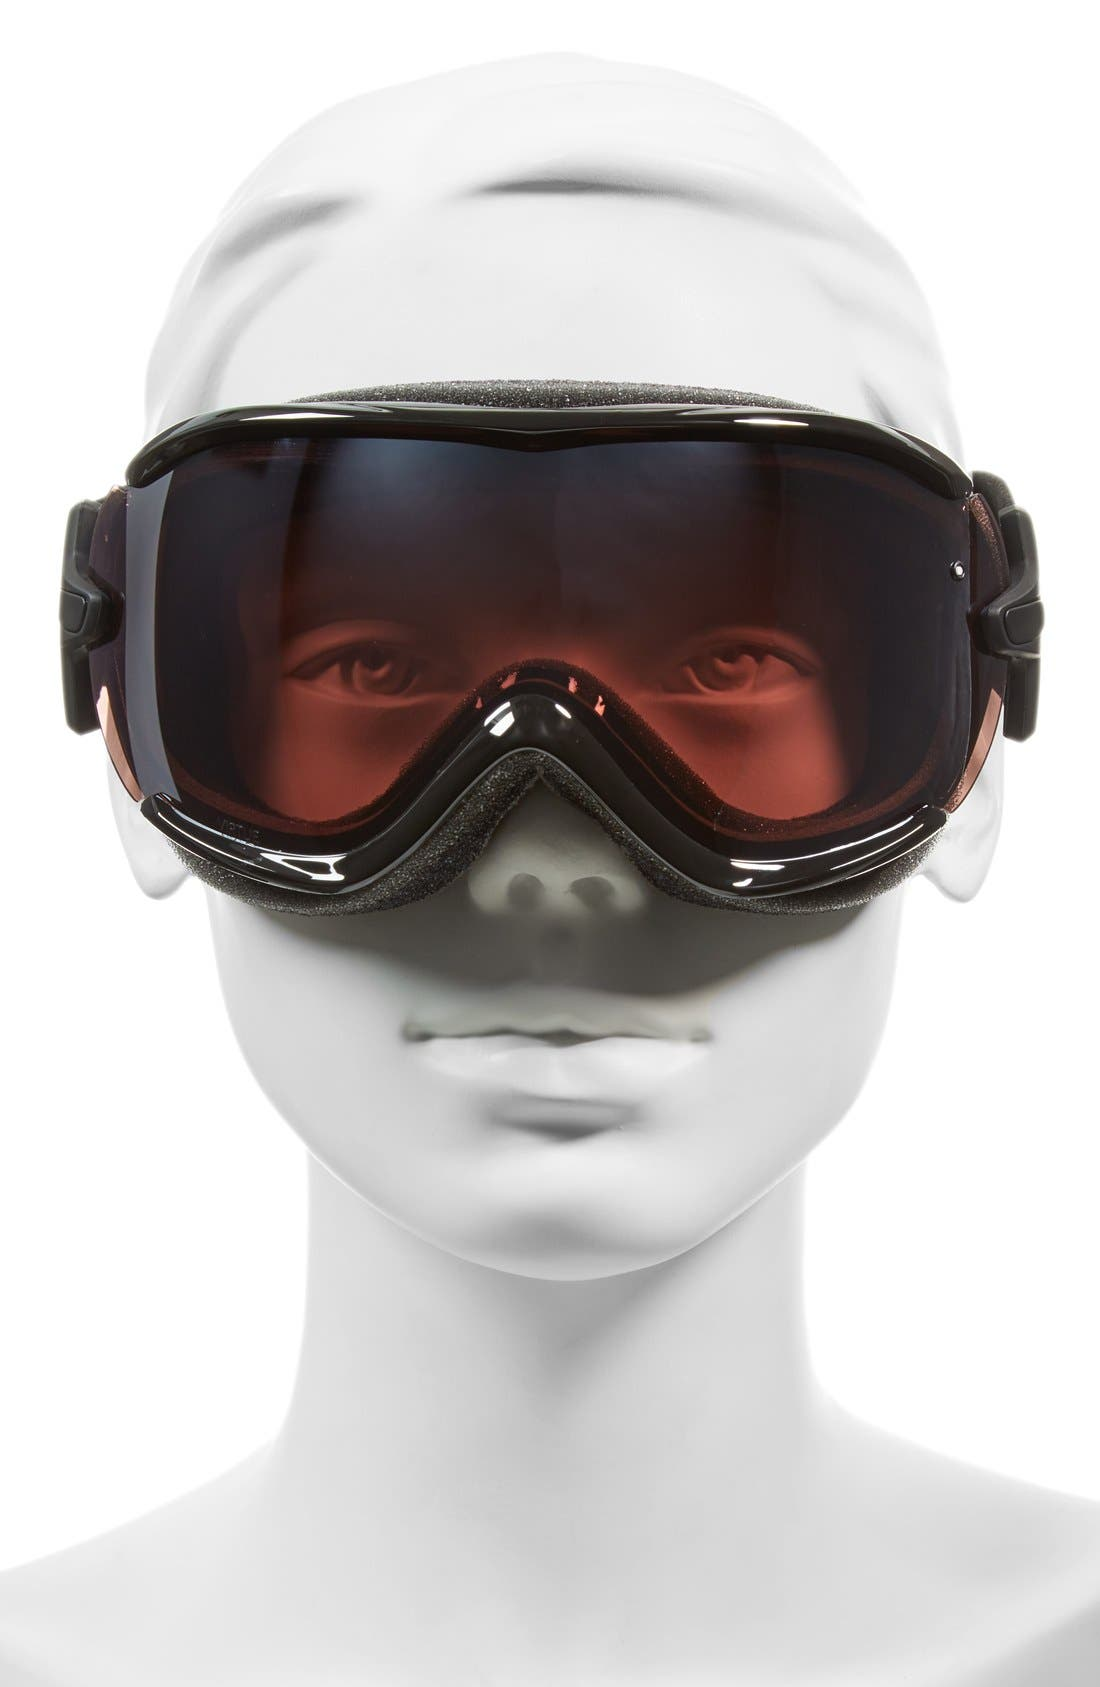 'Virtue' Snow Goggles,                             Alternate thumbnail 2, color,                             Black Eclipse/ Ignitor Mirror